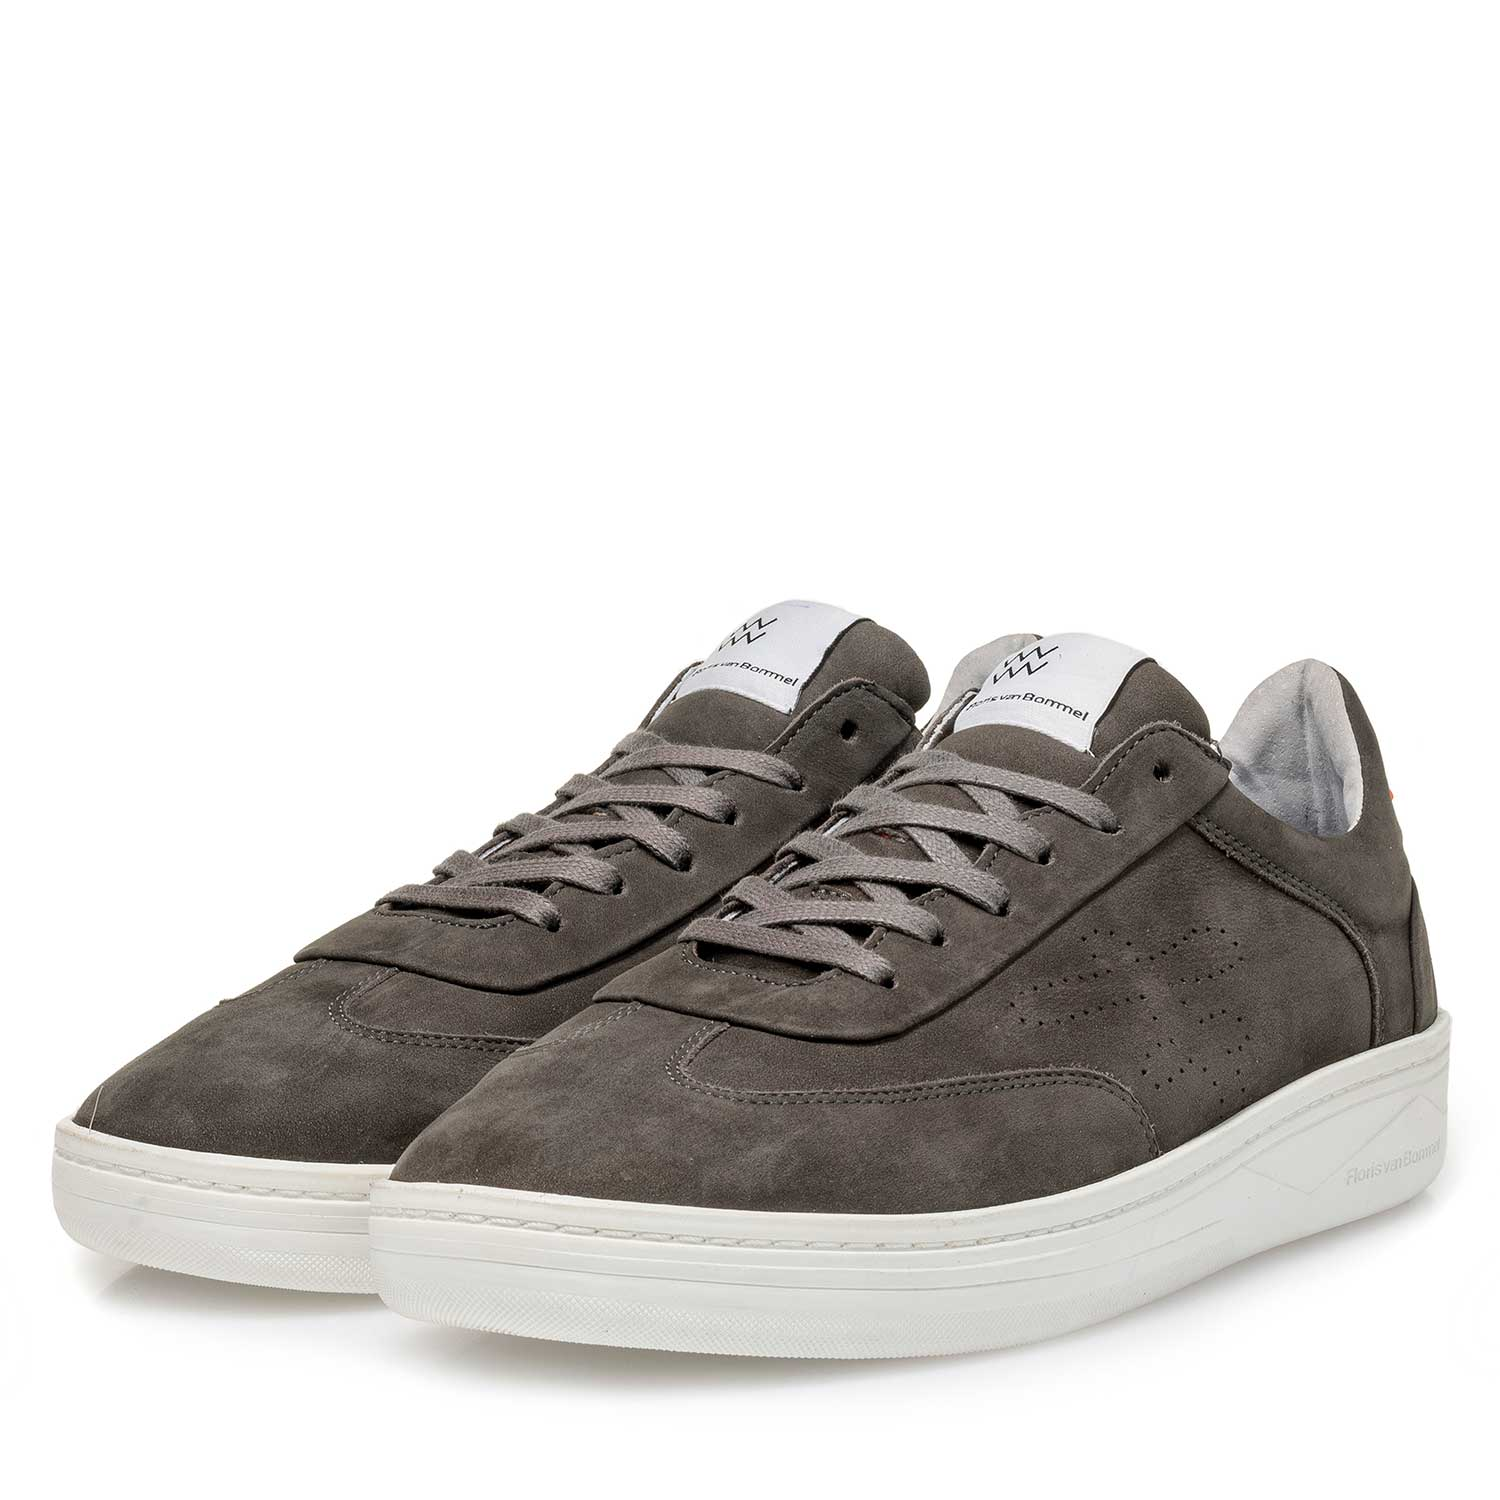 16255/02 - Dark grey nubuck leather sneaker